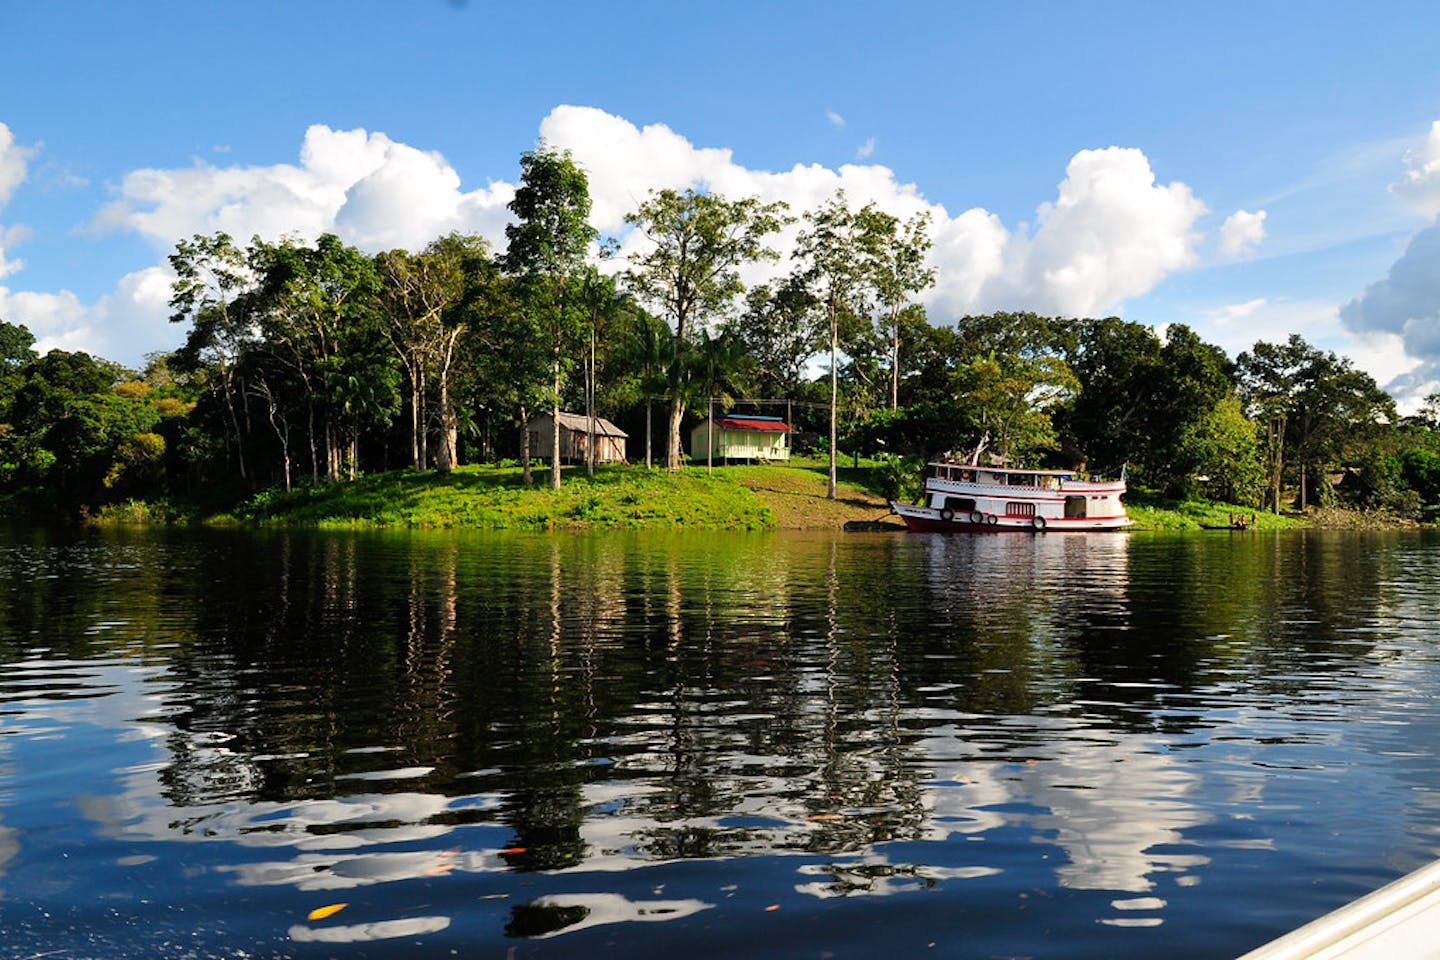 A house in the middle of a forest in the Amazon riverbank, Brazil